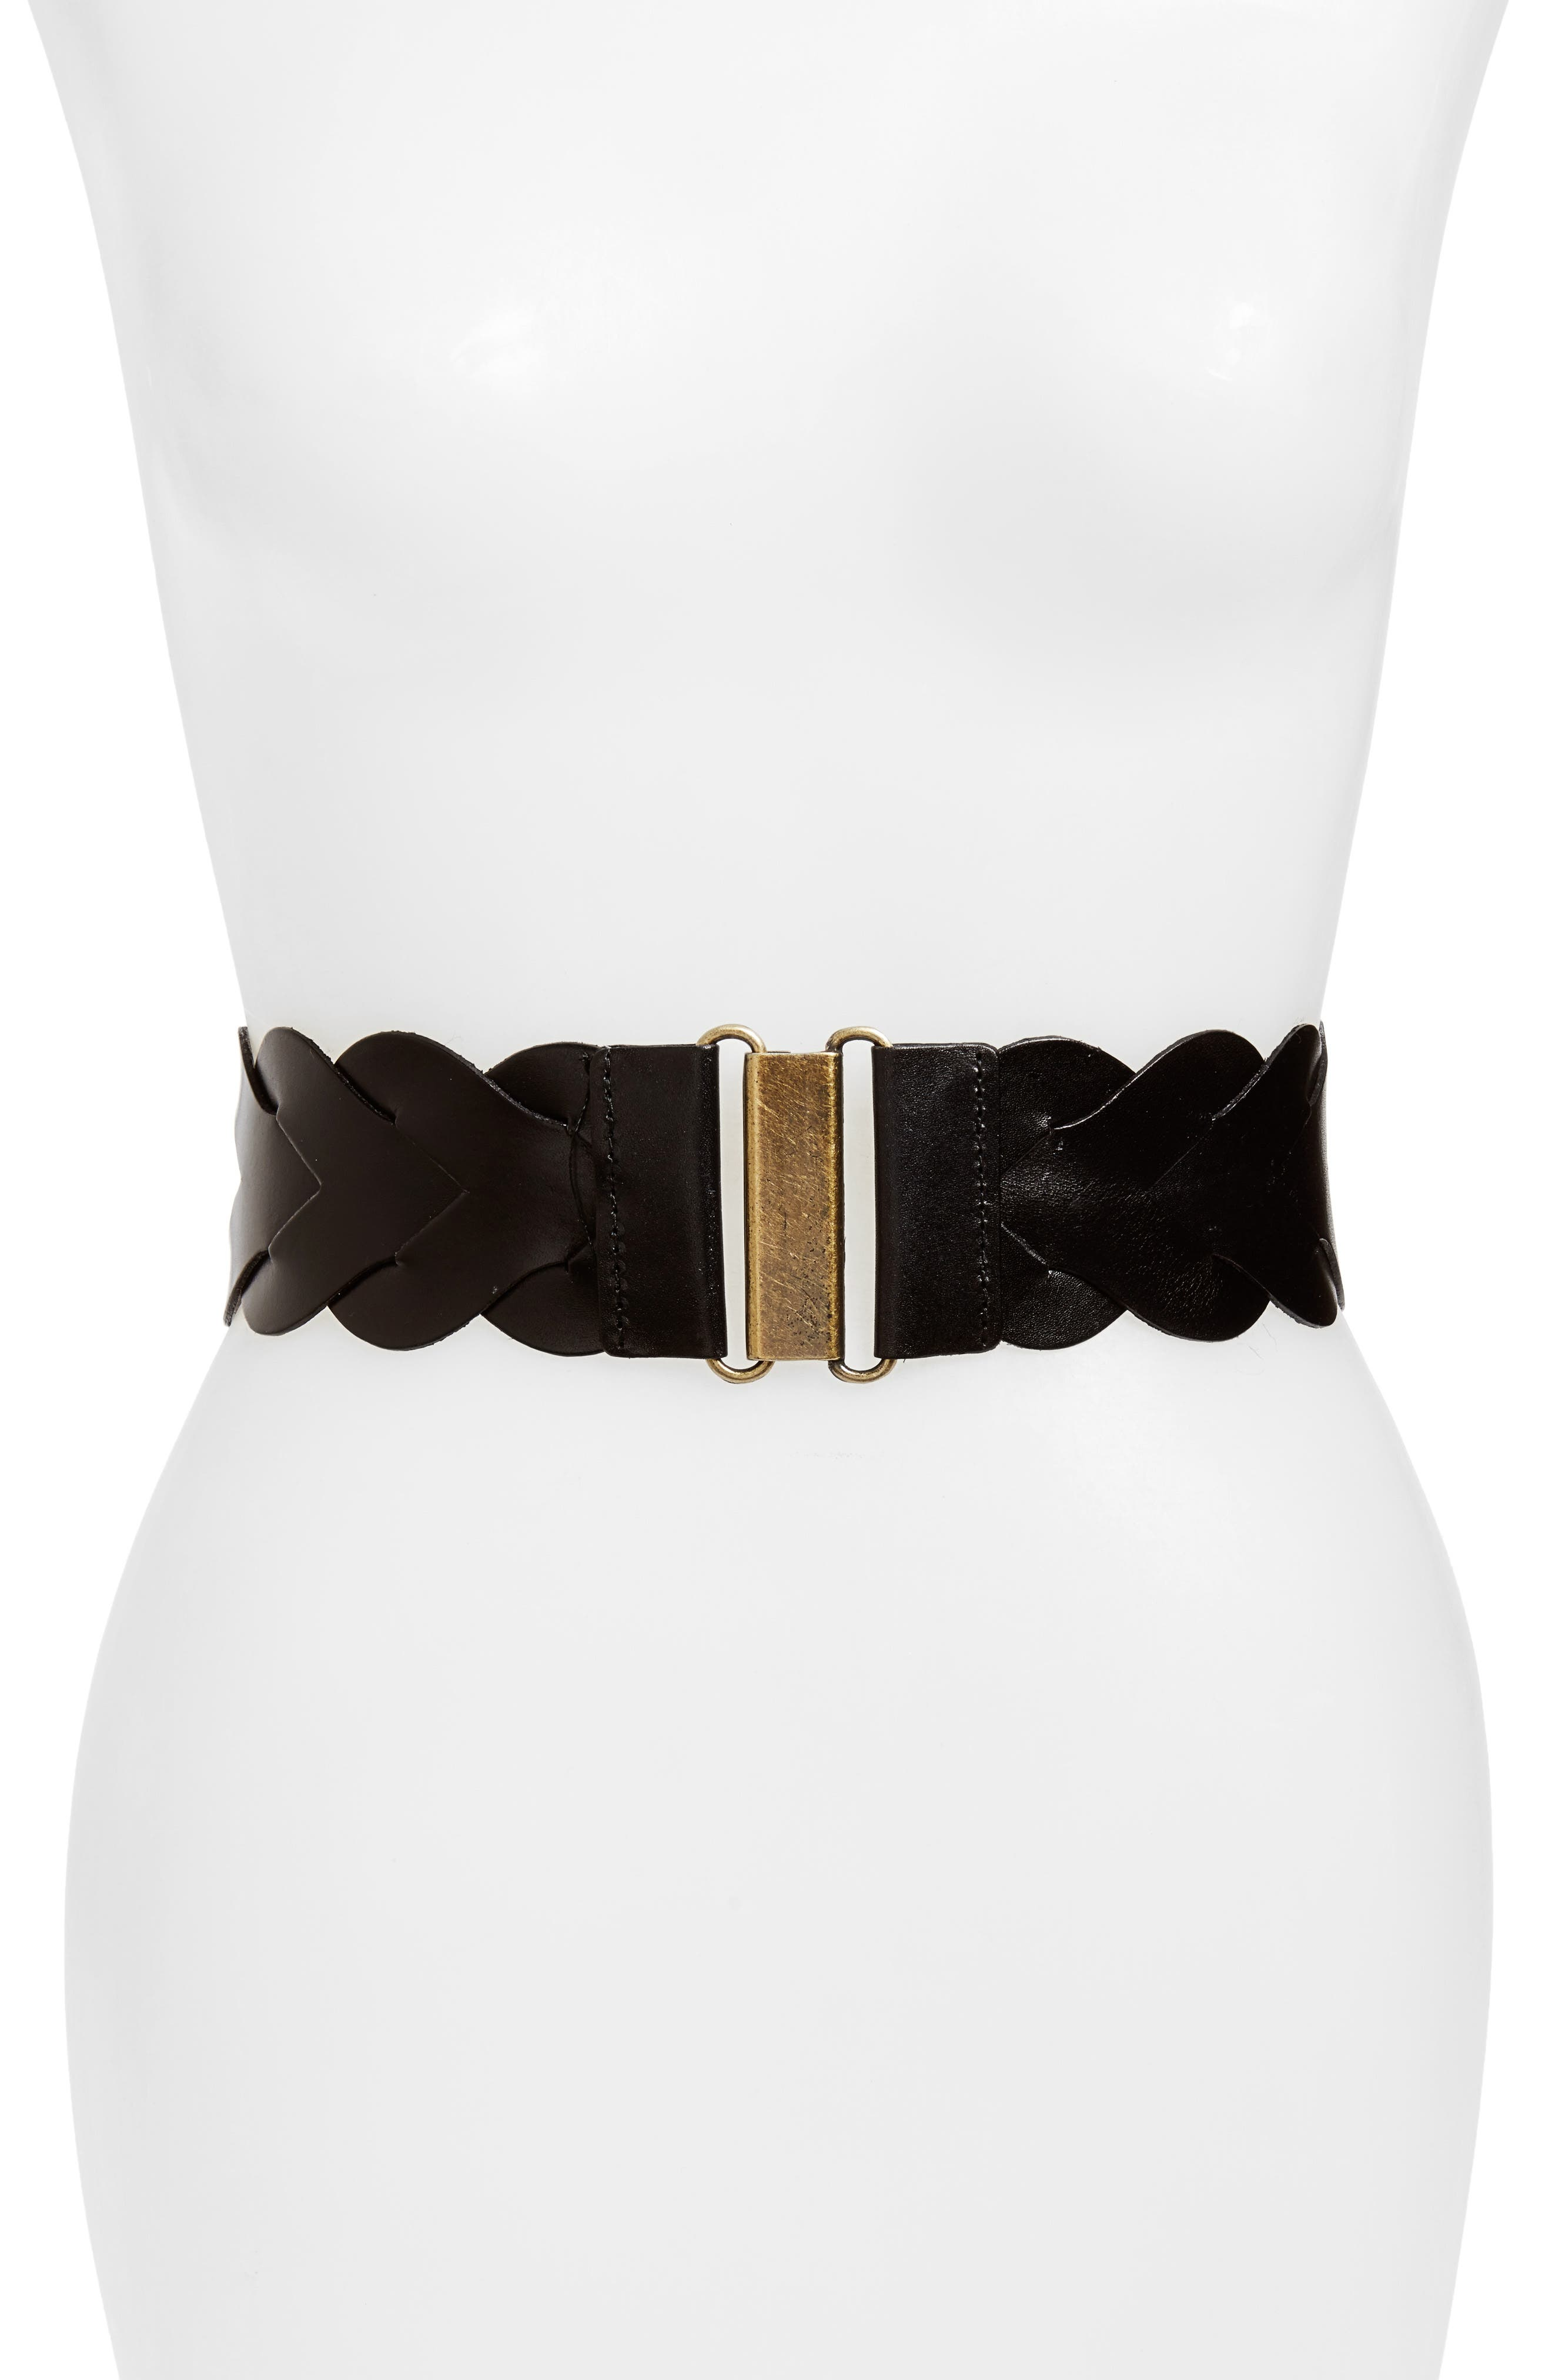 Skylar Stretch Belt,                             Main thumbnail 1, color,                             BLACK